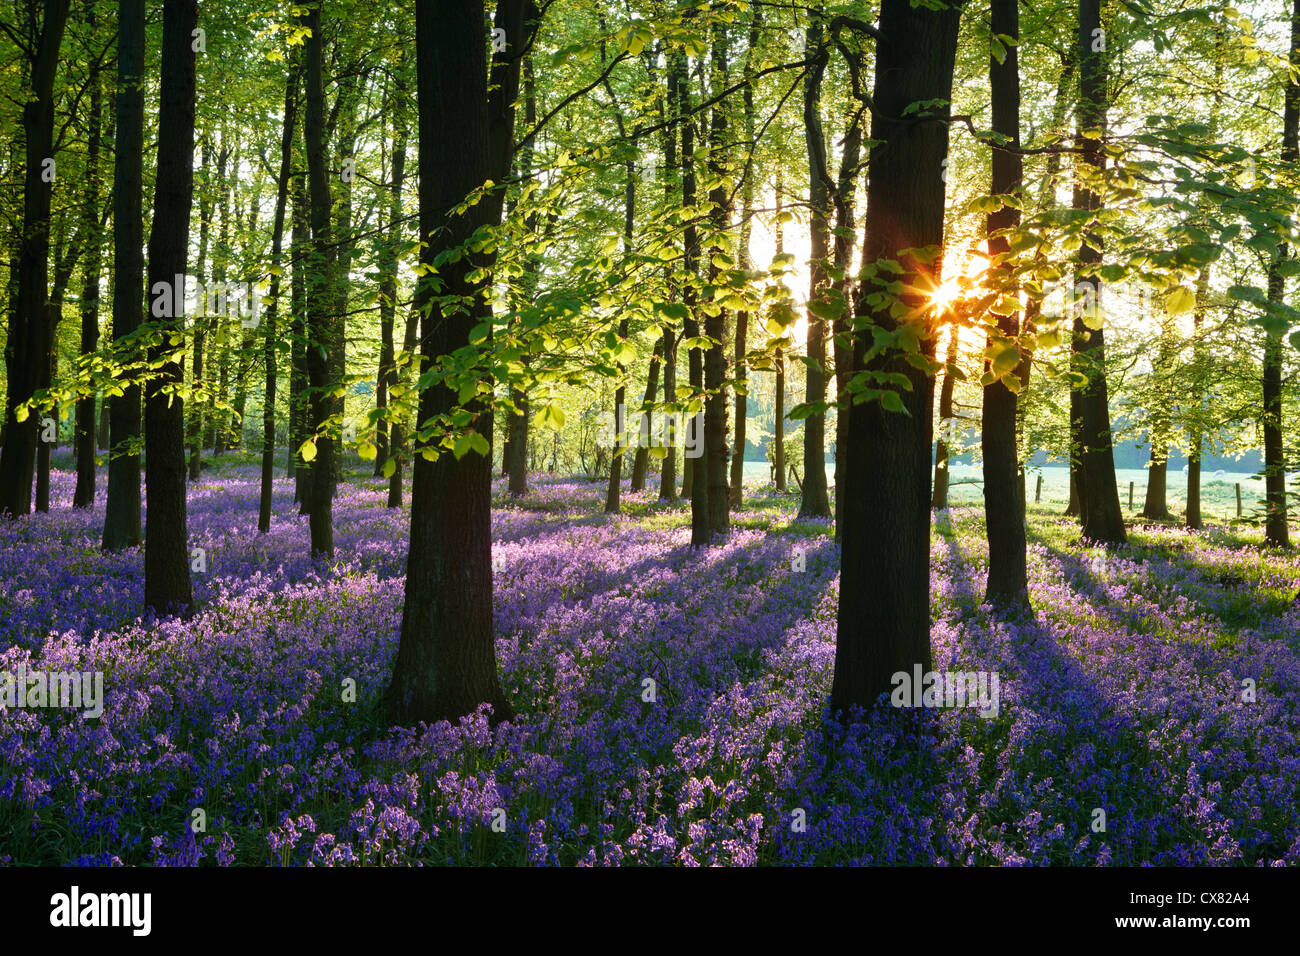 A covering of English bluebells highlighted by early sunlight. A misty sea of blue carpets the woodland floor during - Stock Image